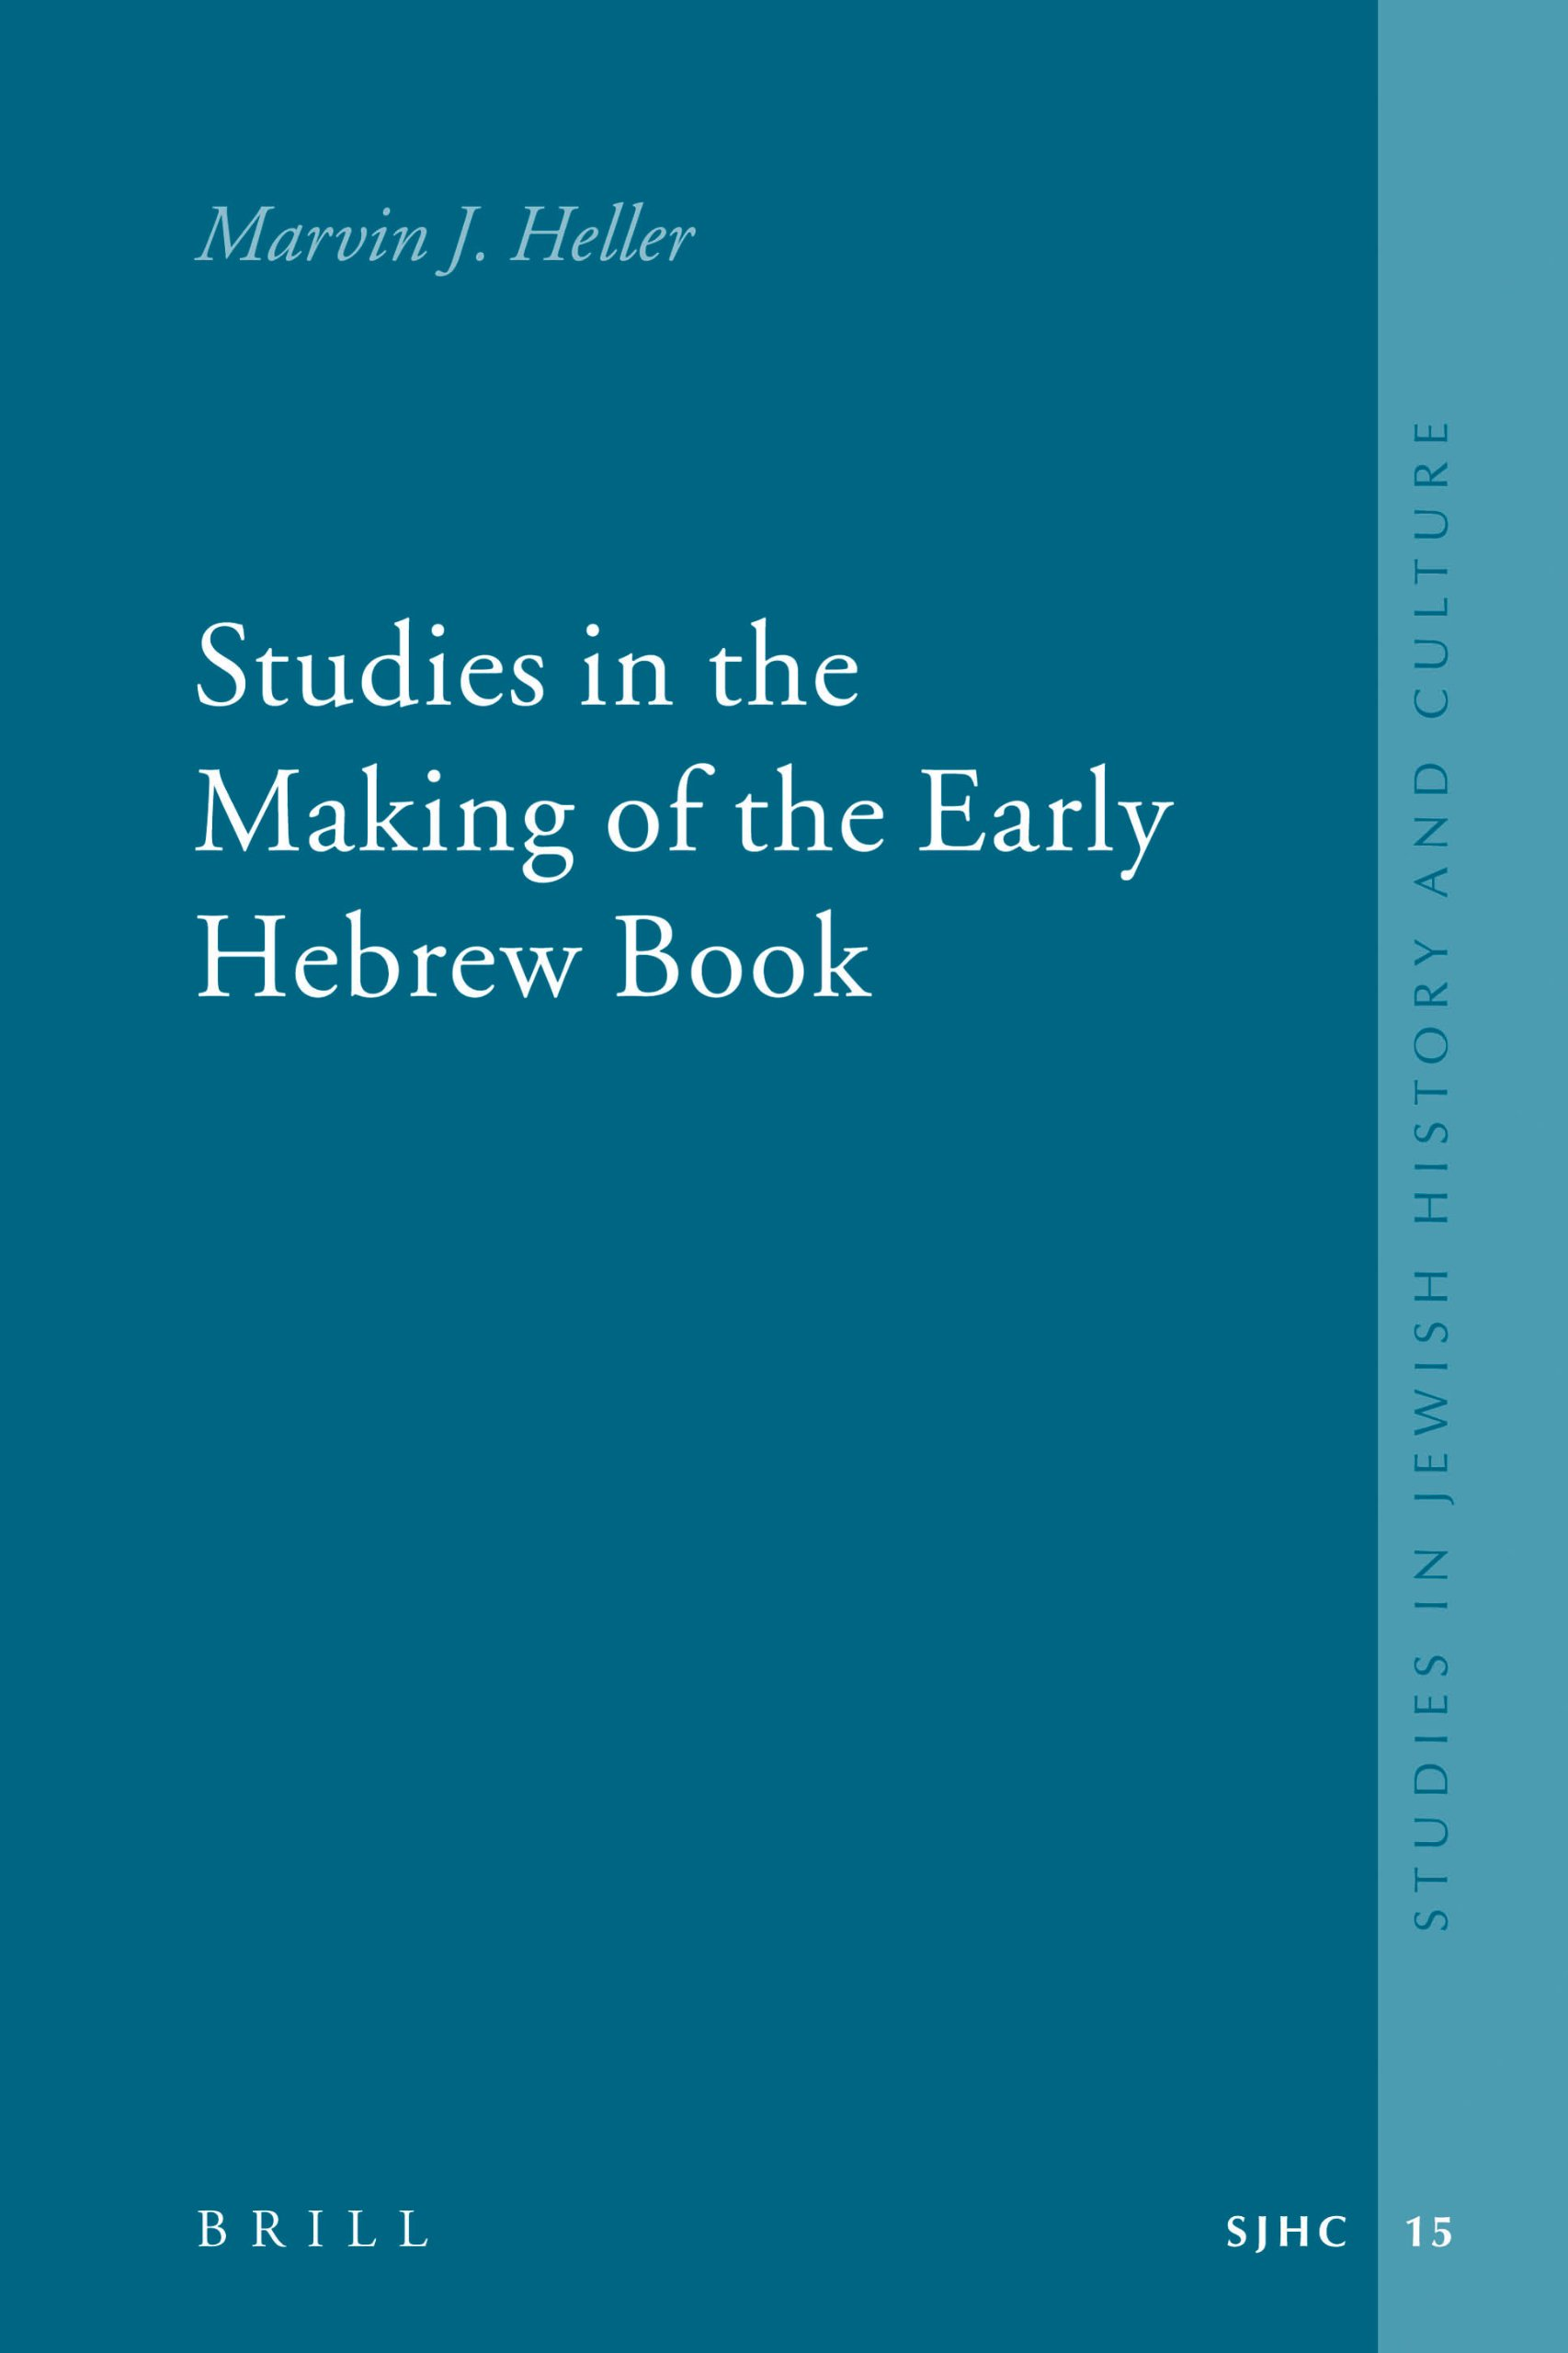 Studies in the Making of the Early Hebrew Book (Studies in Jewish History and Culture) ebook